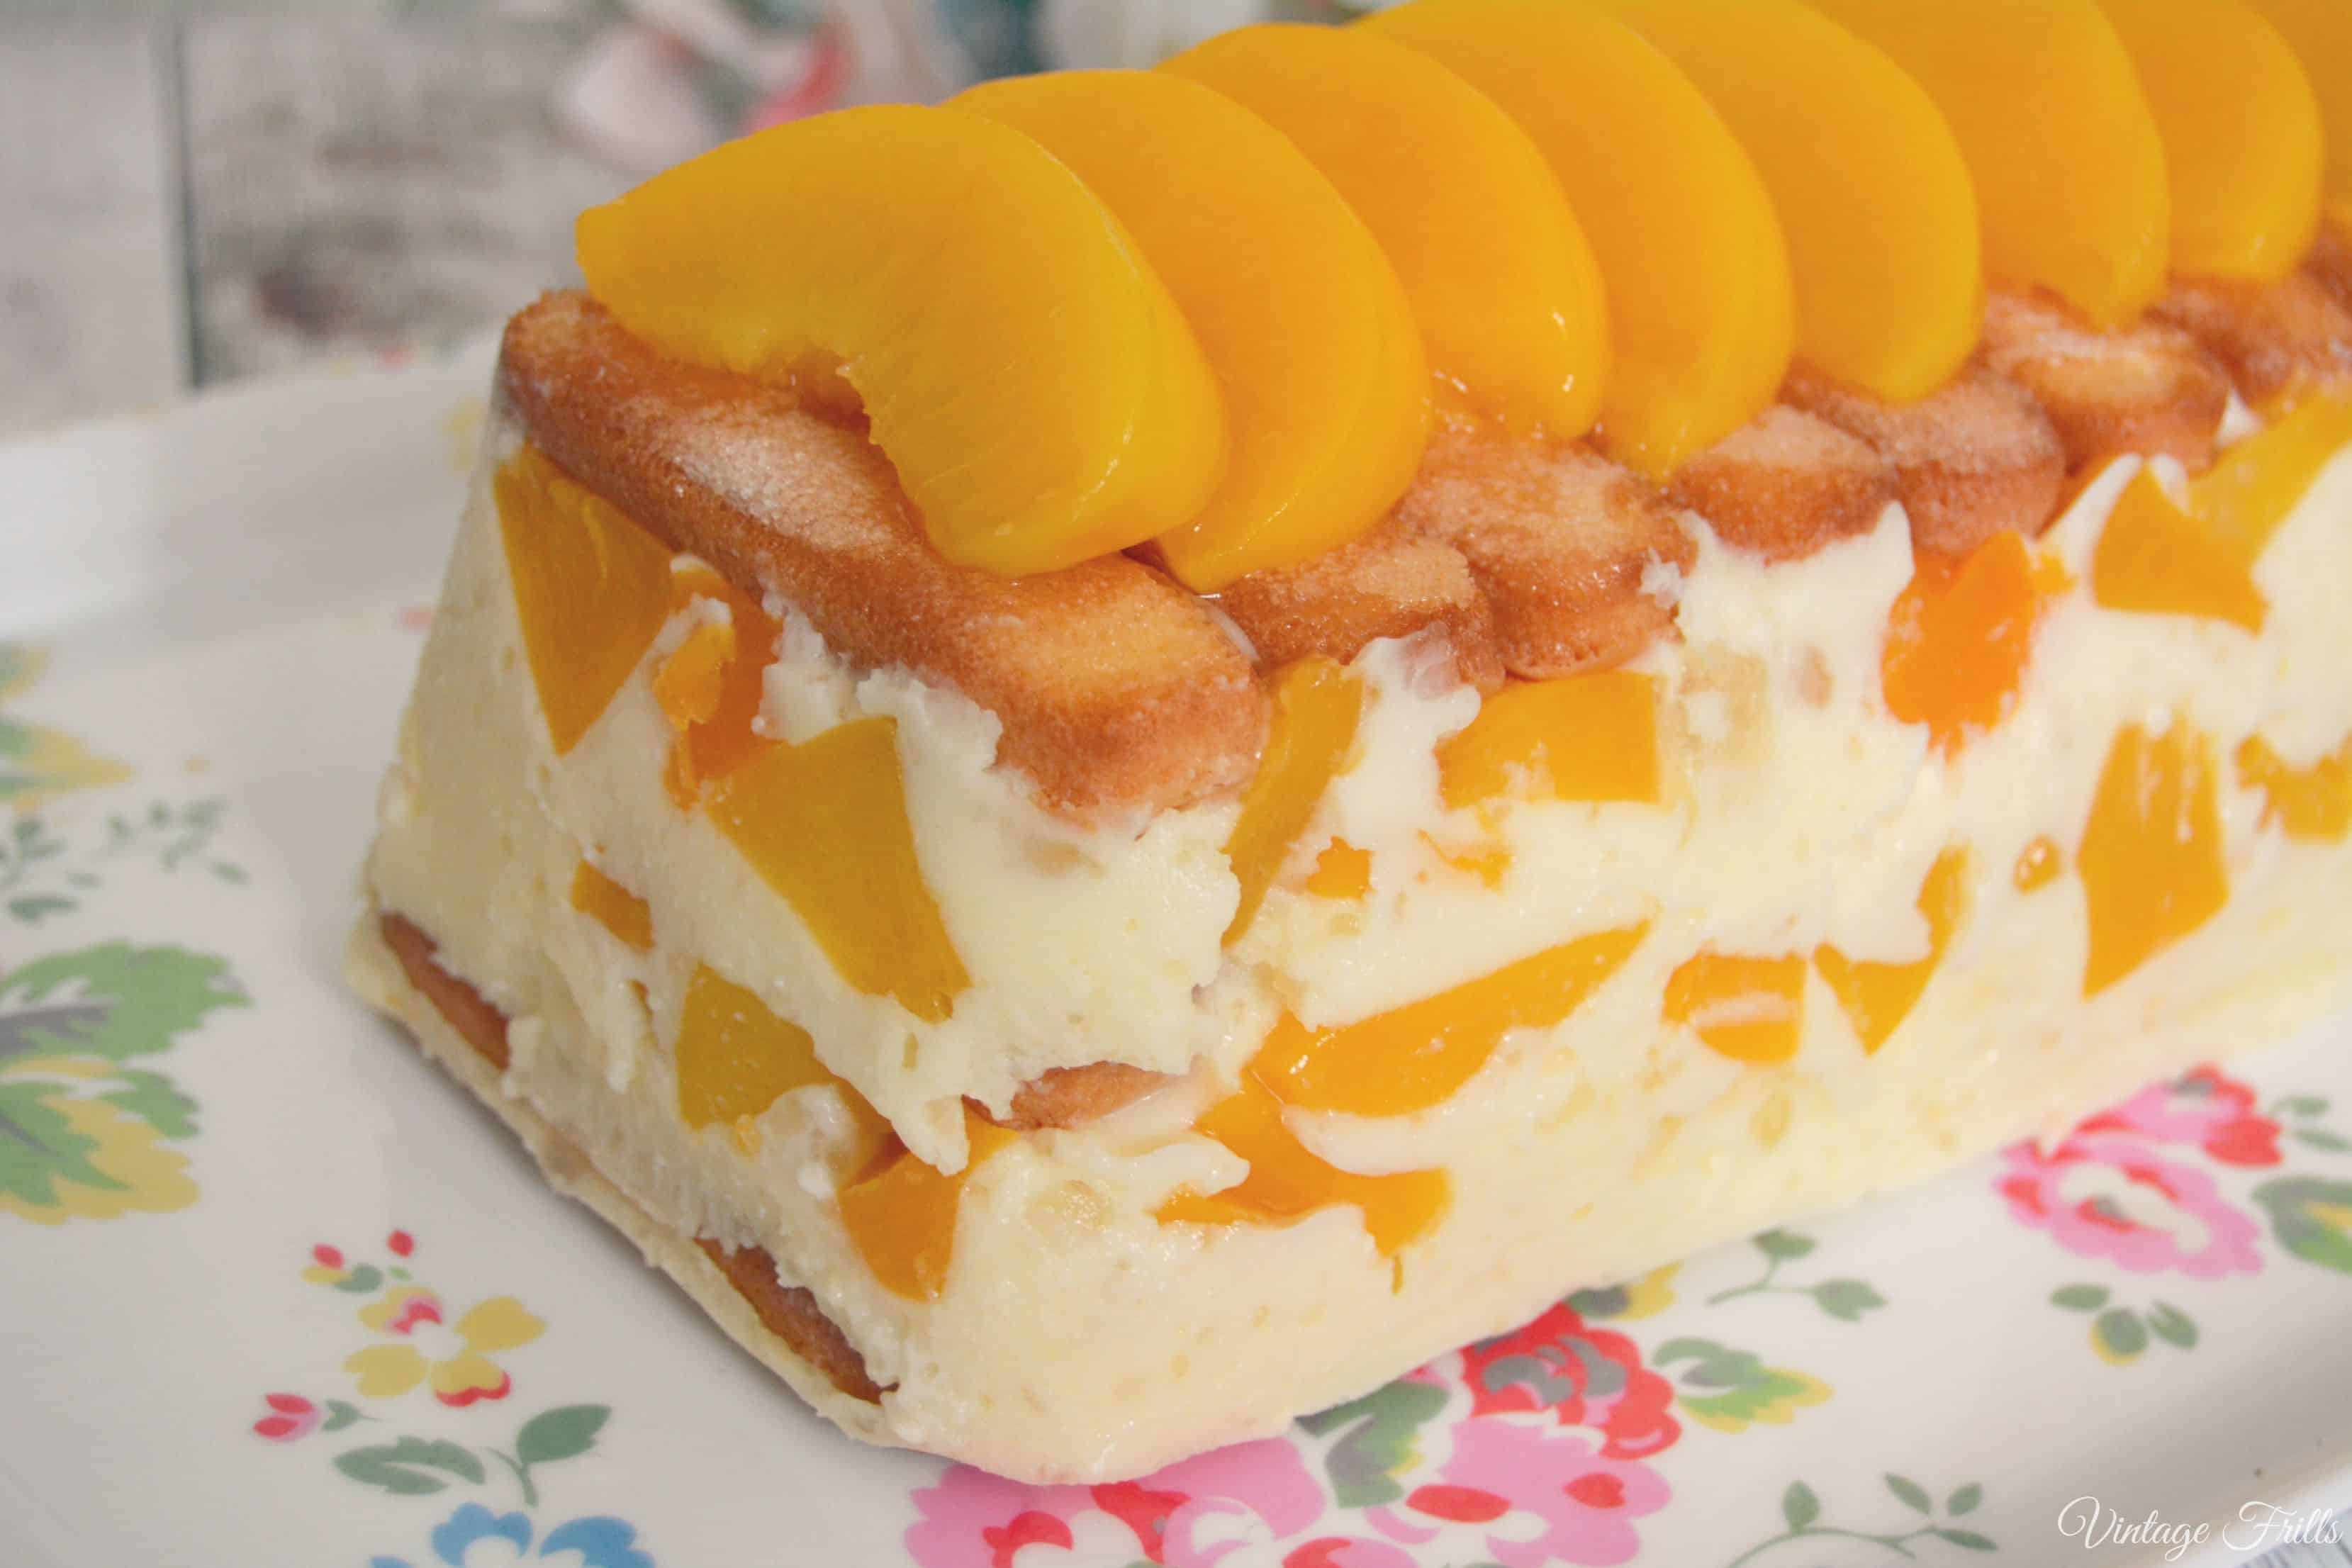 Peach and marshmallow dessert